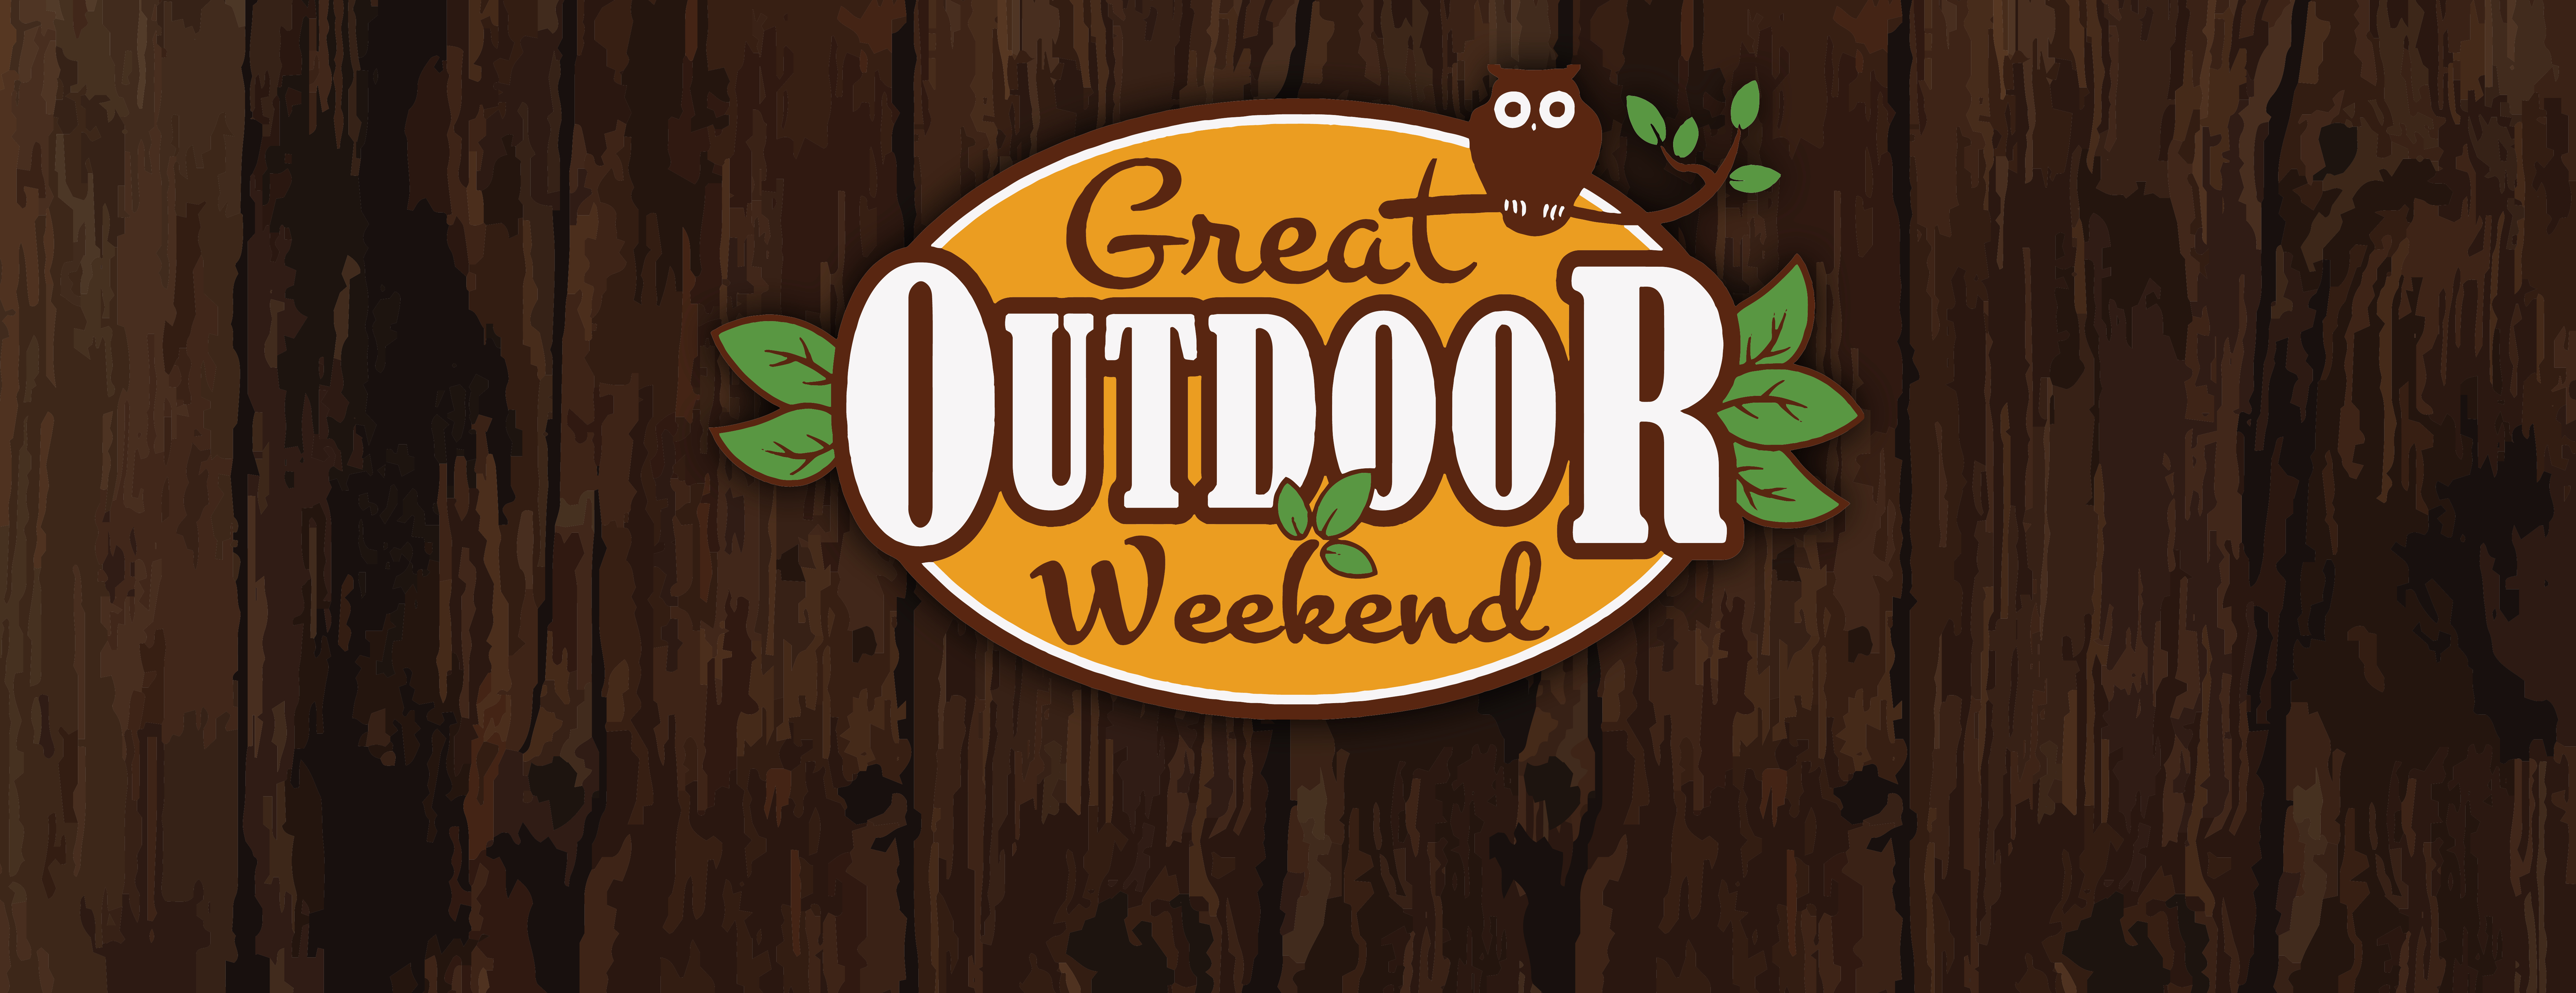 Graphic of a dark wood background with Great Outdoor Weekend logo on top